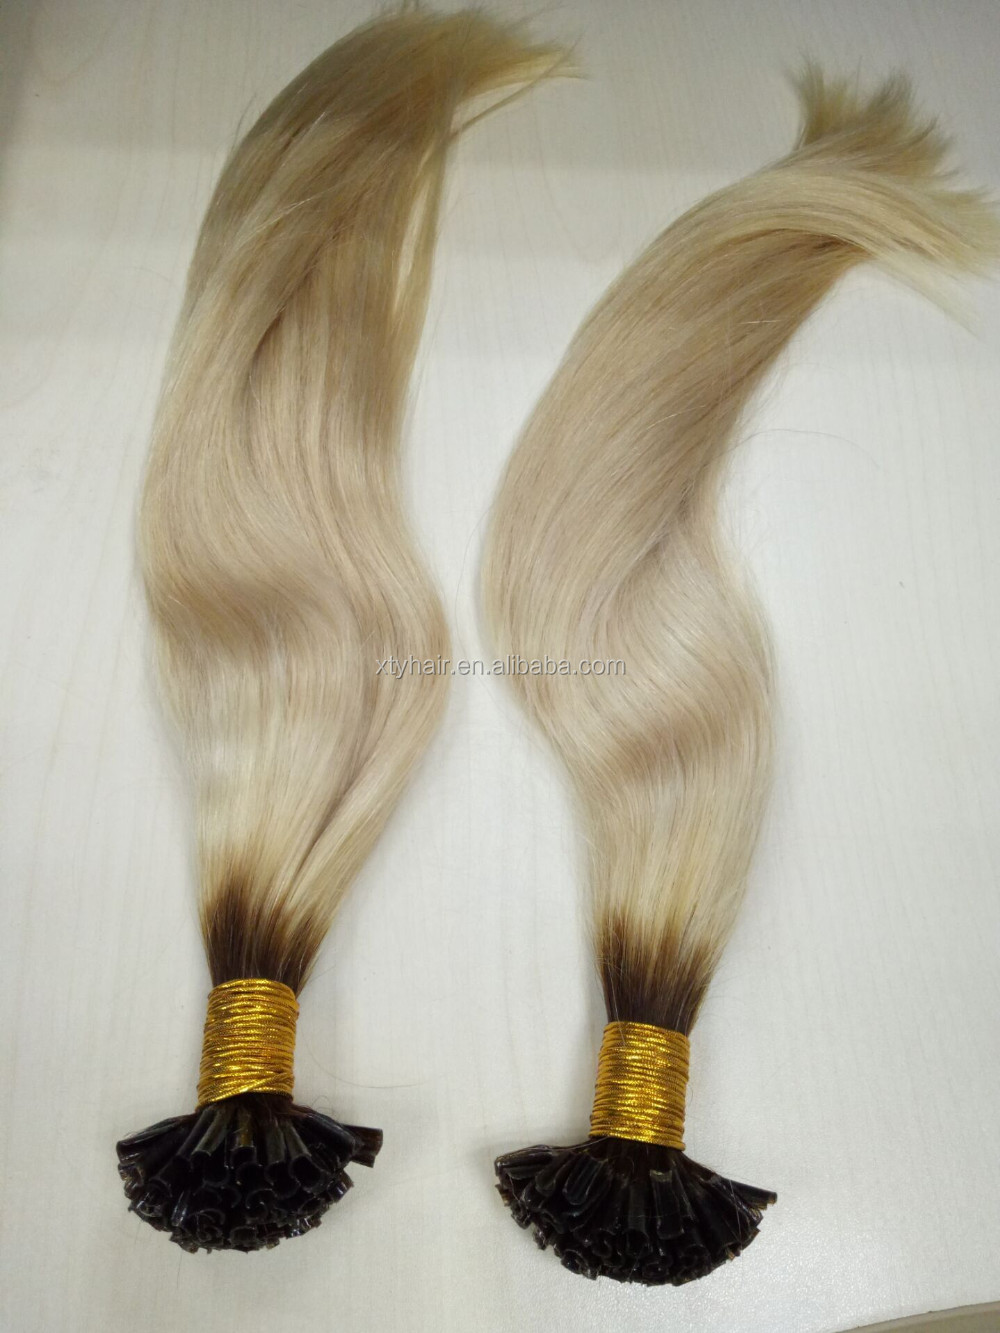 Alibaba express factory woholesale competitive price two tone color Nail U-tip human hair extensions, hair weft